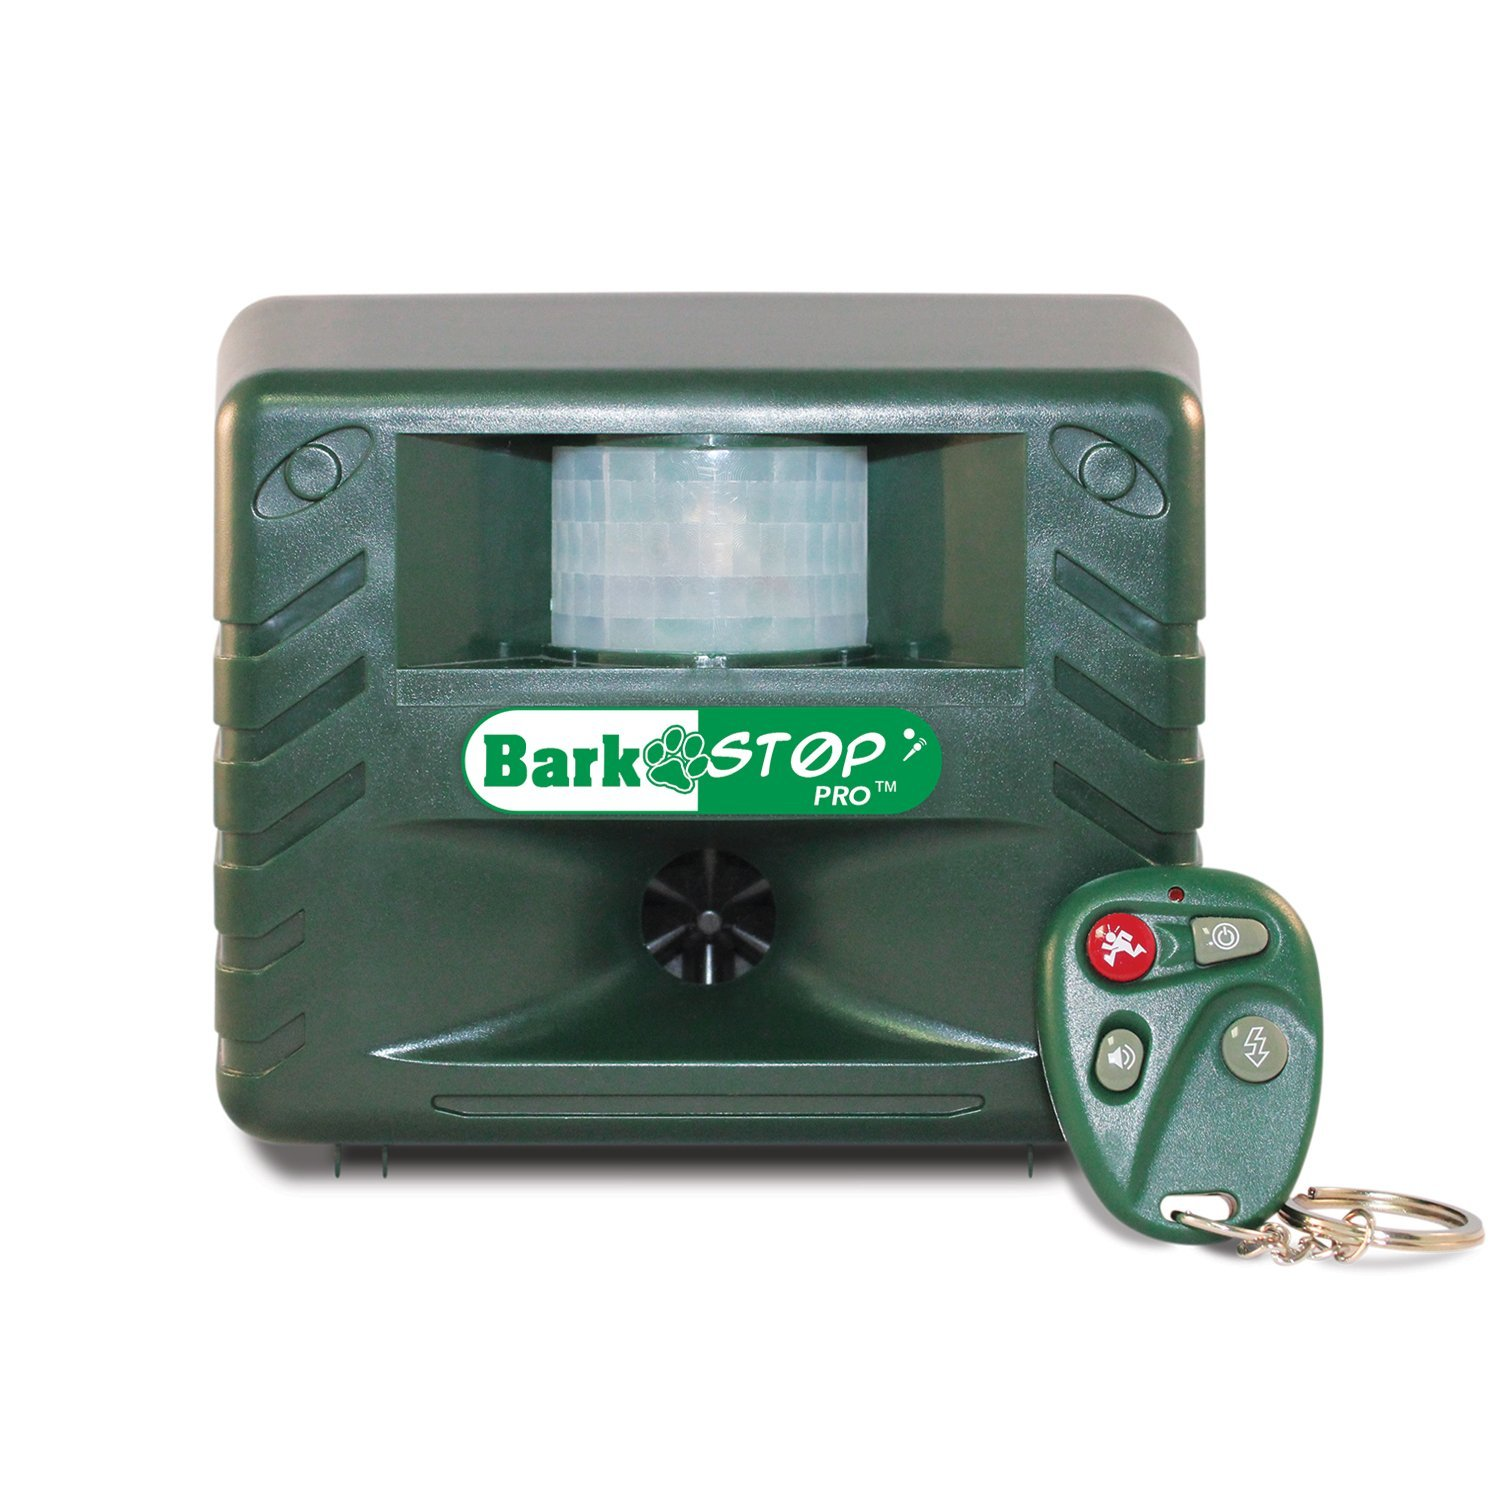 Bark Stop Pro Ultrasonic Deterrent Pest Repeller Center Dog Circuit You Can Find One On This Repellent